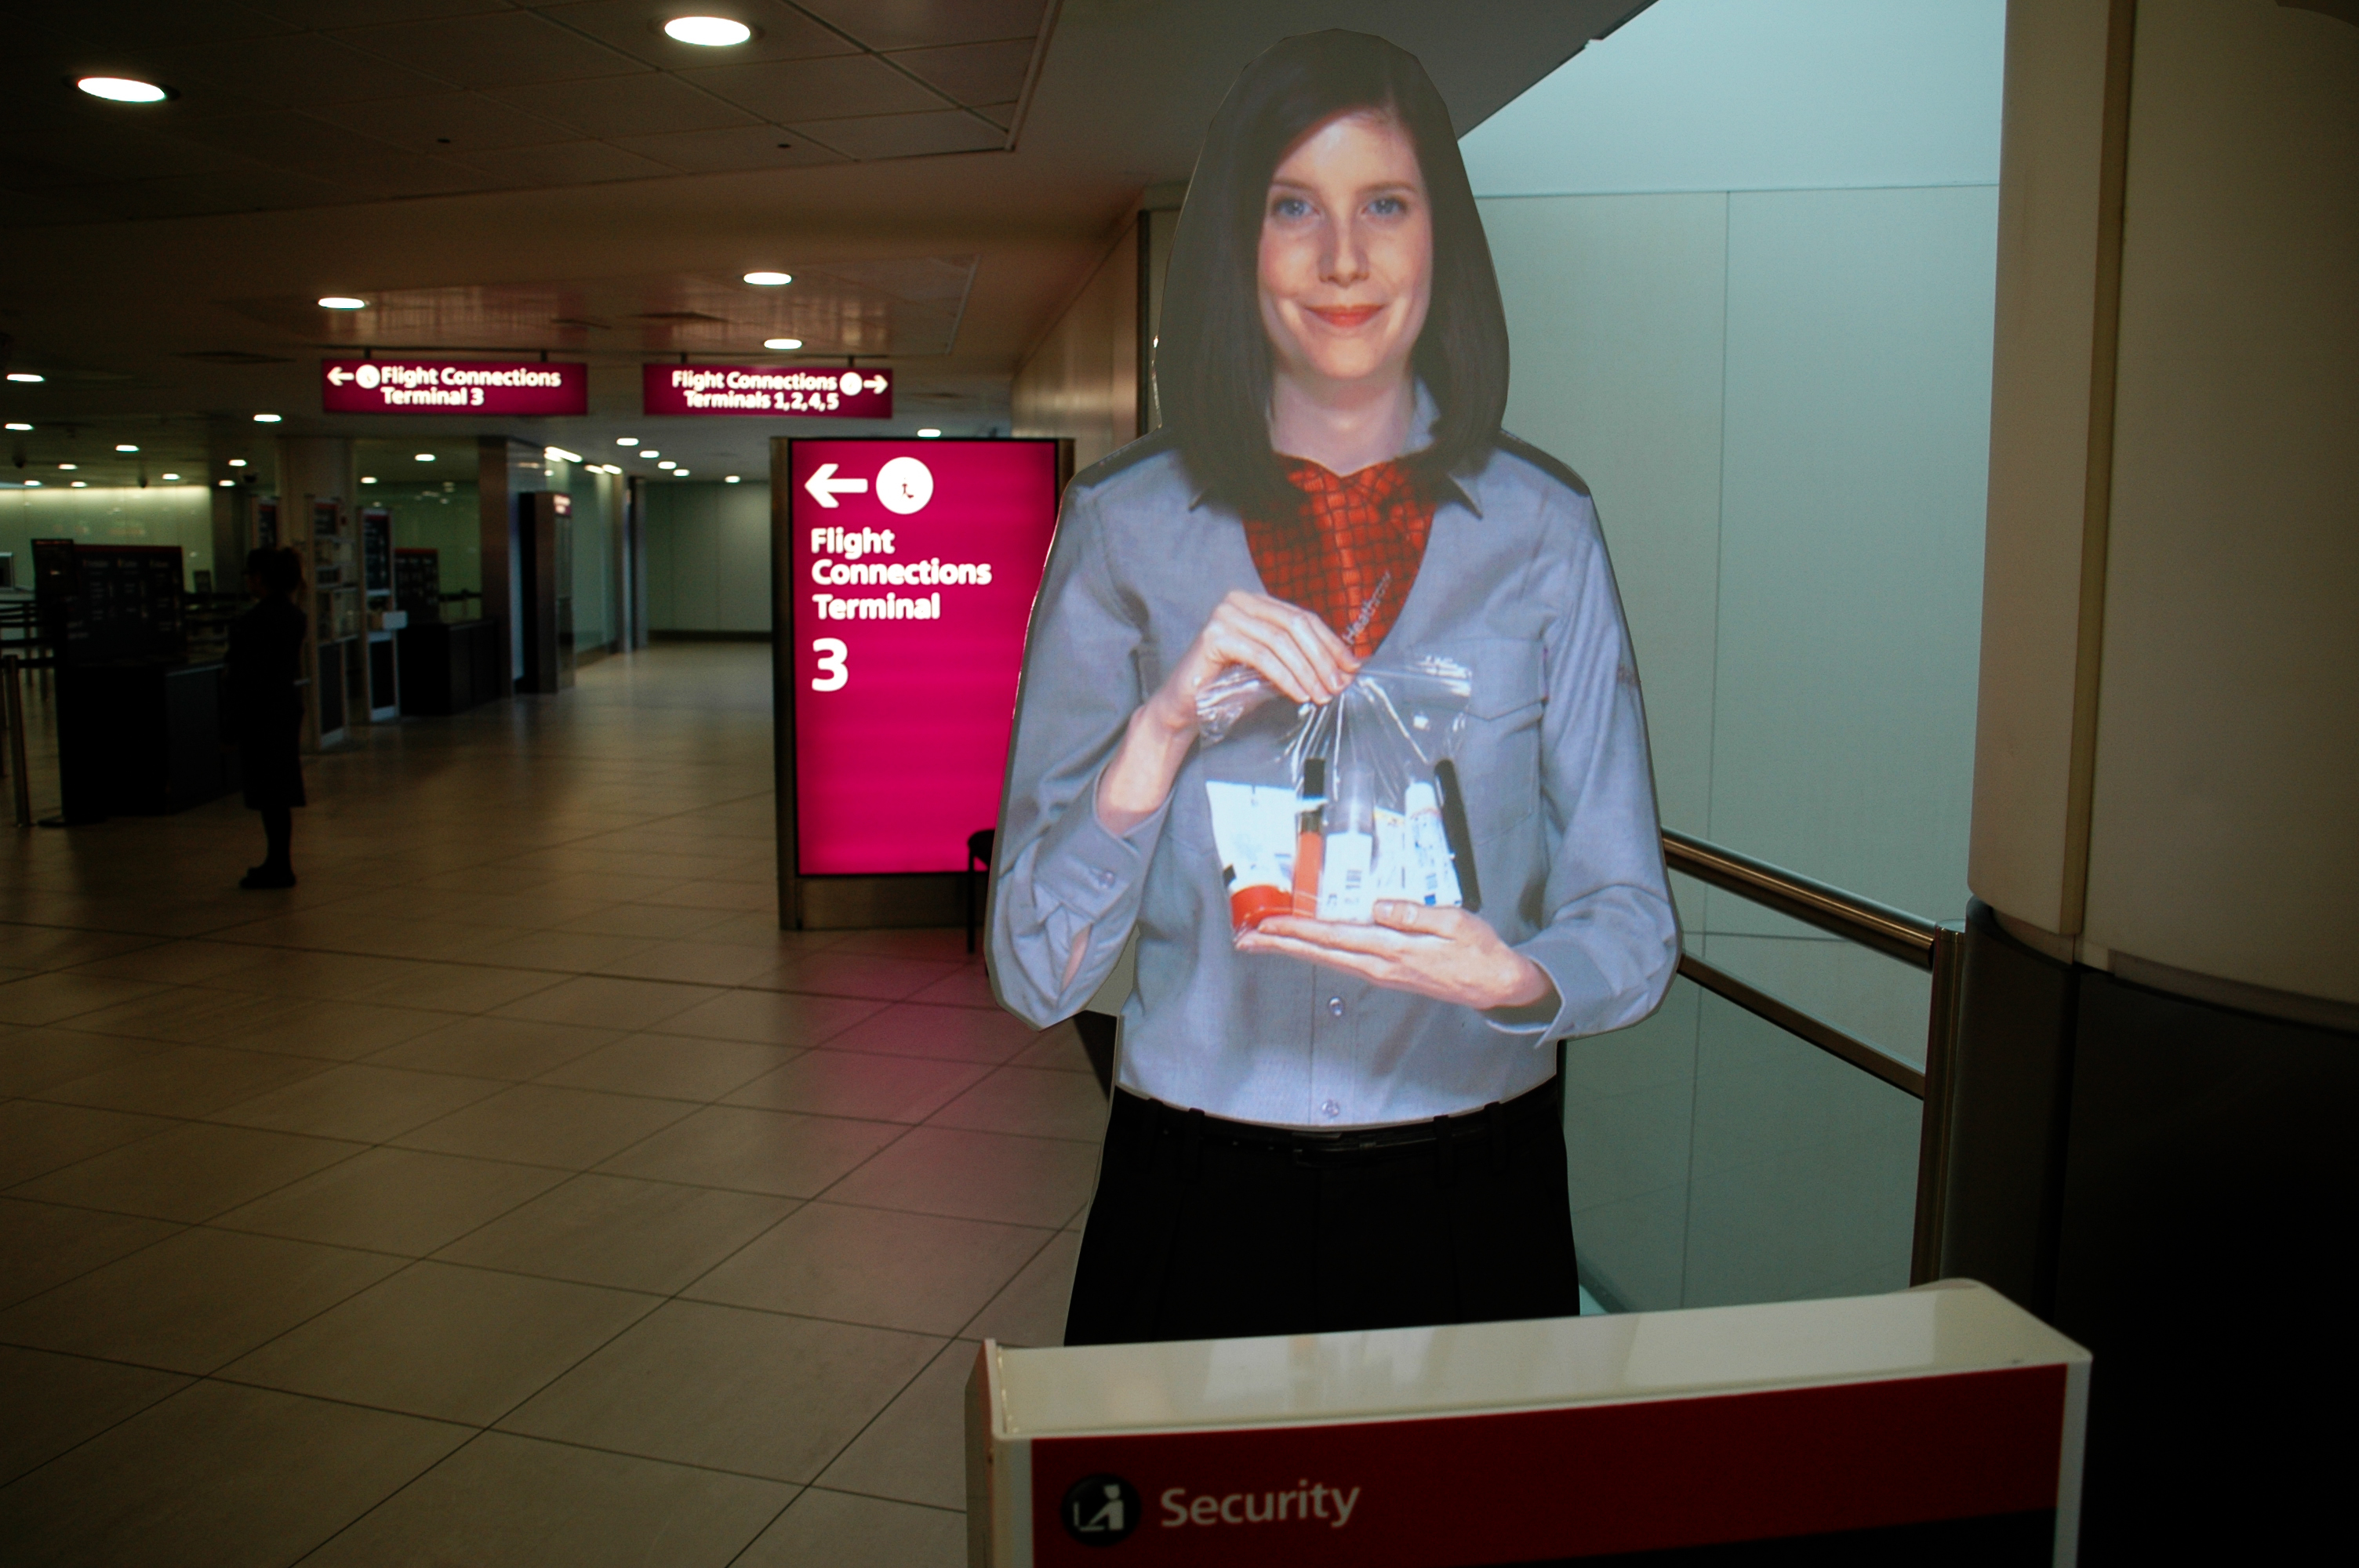 VA Heathrow Tensator Virtual Assistant